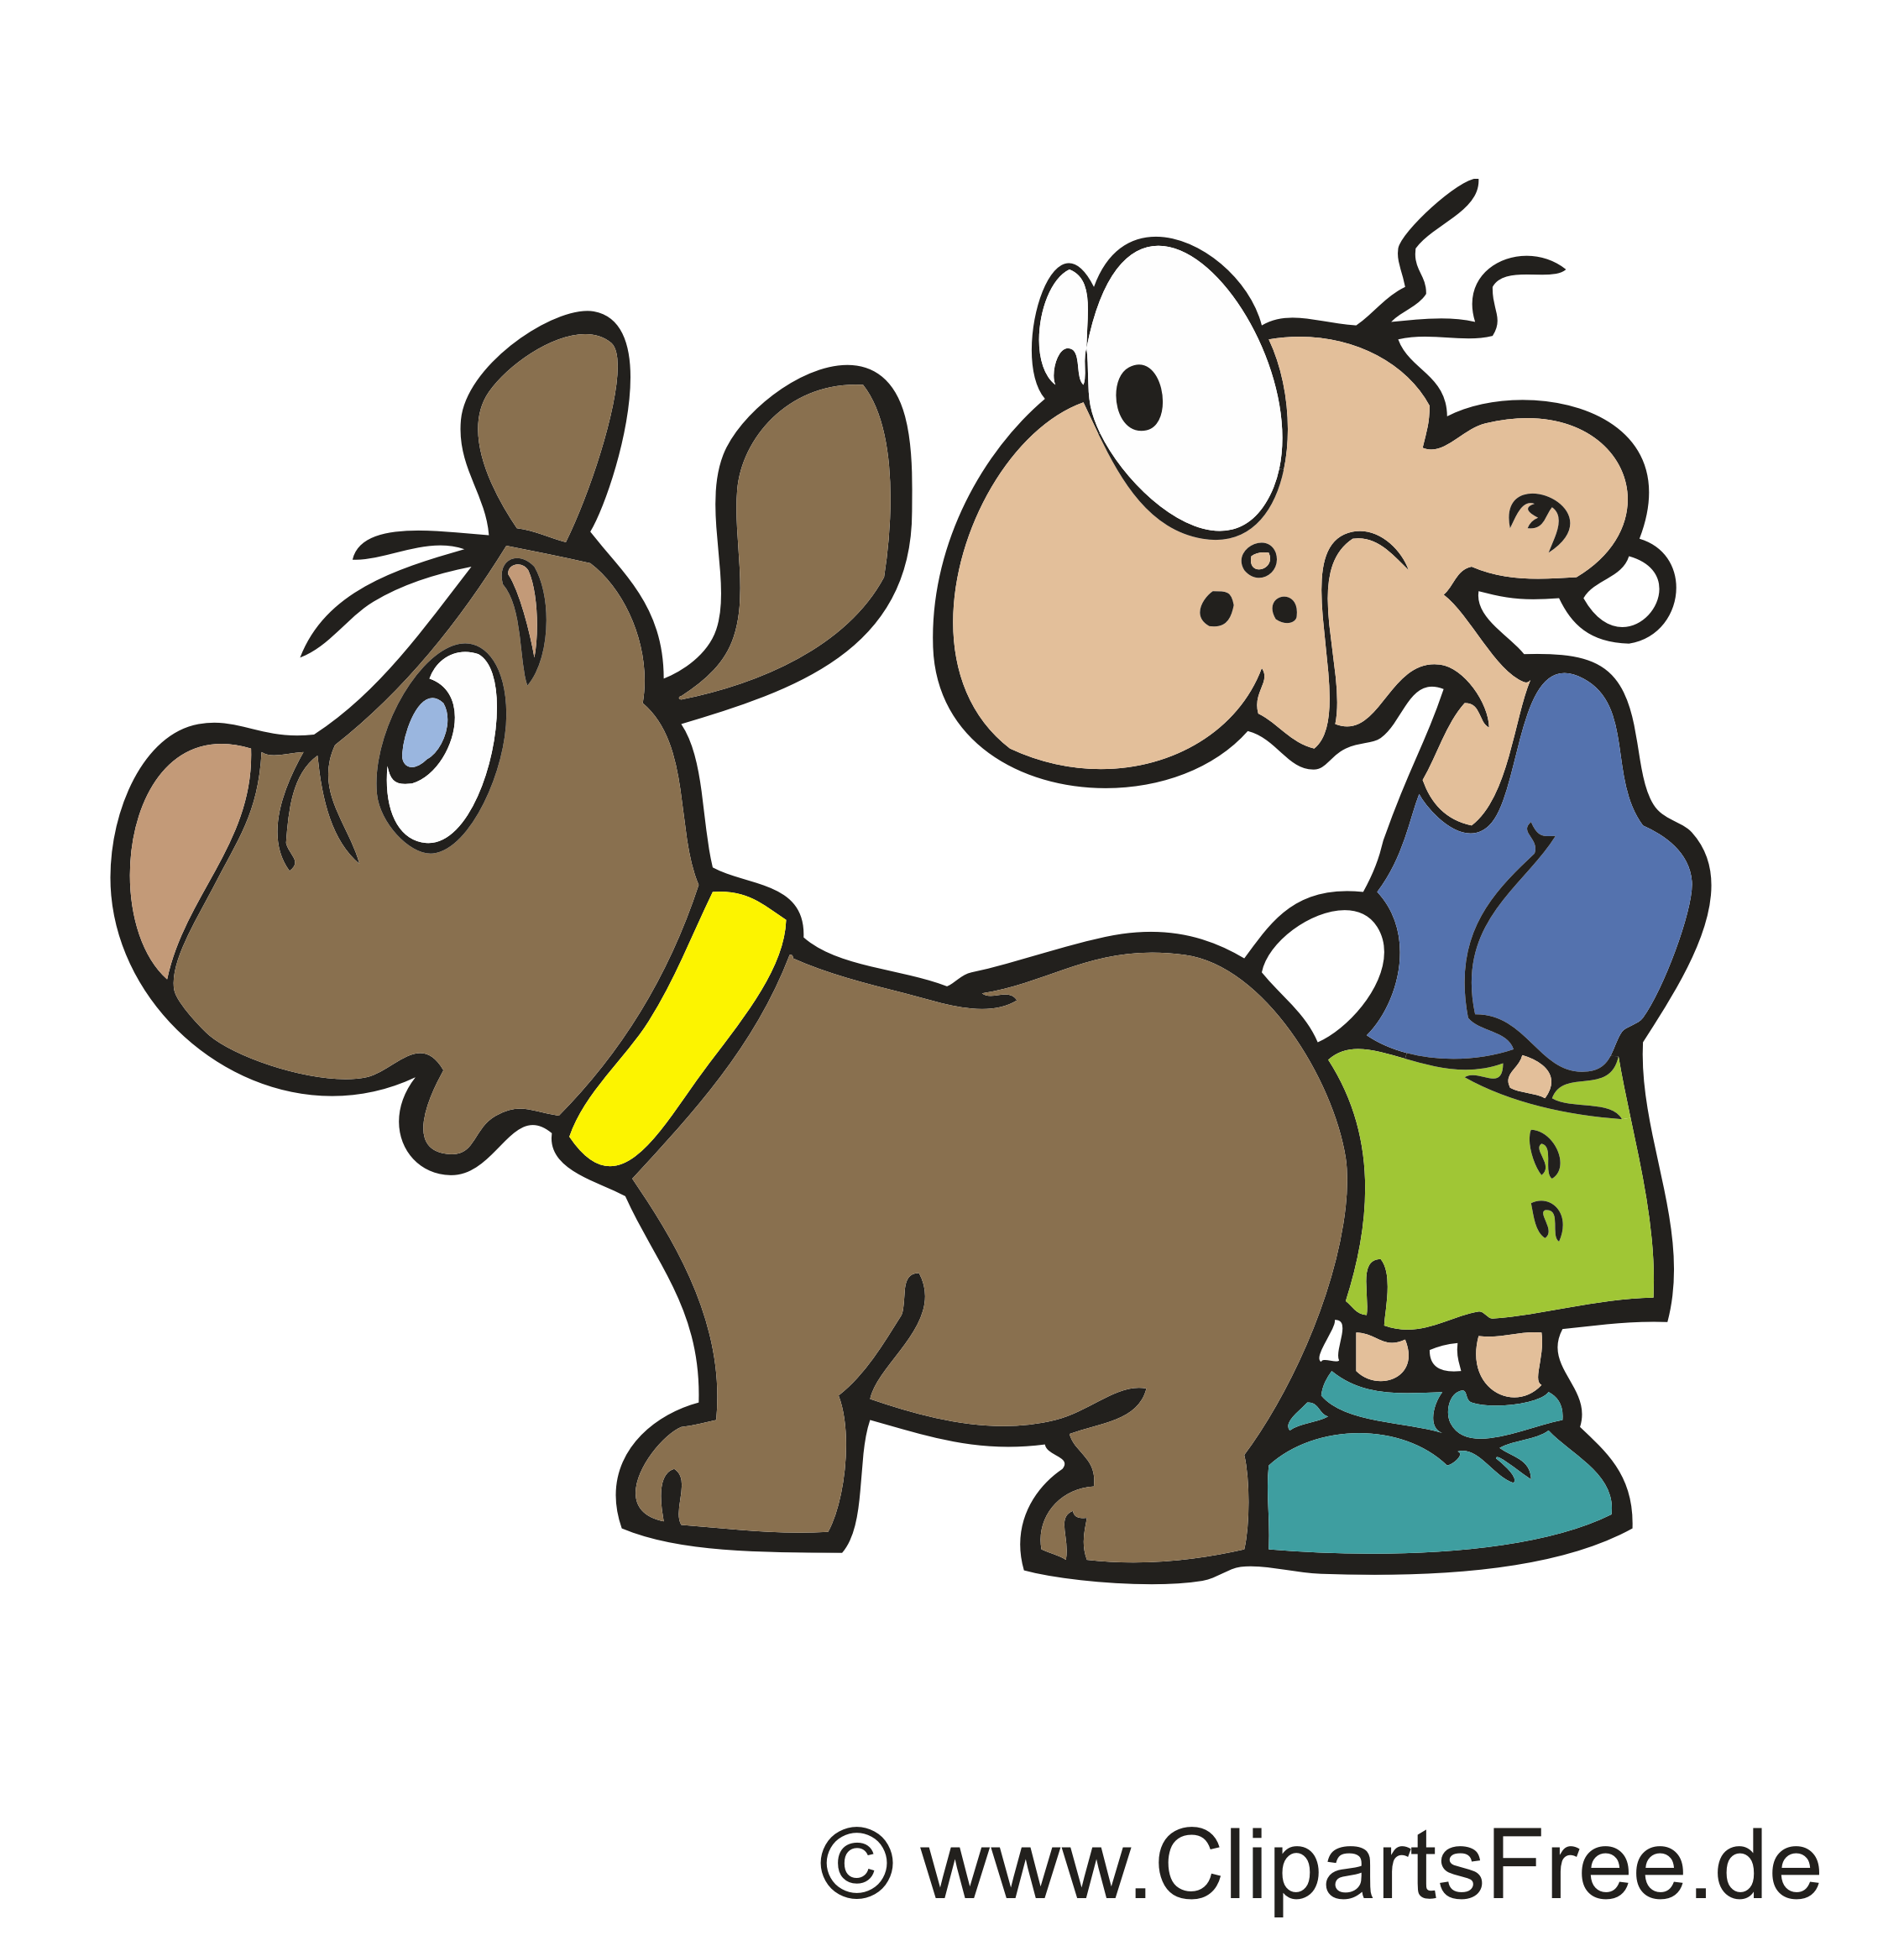 Bild clipart #4, Download drawings